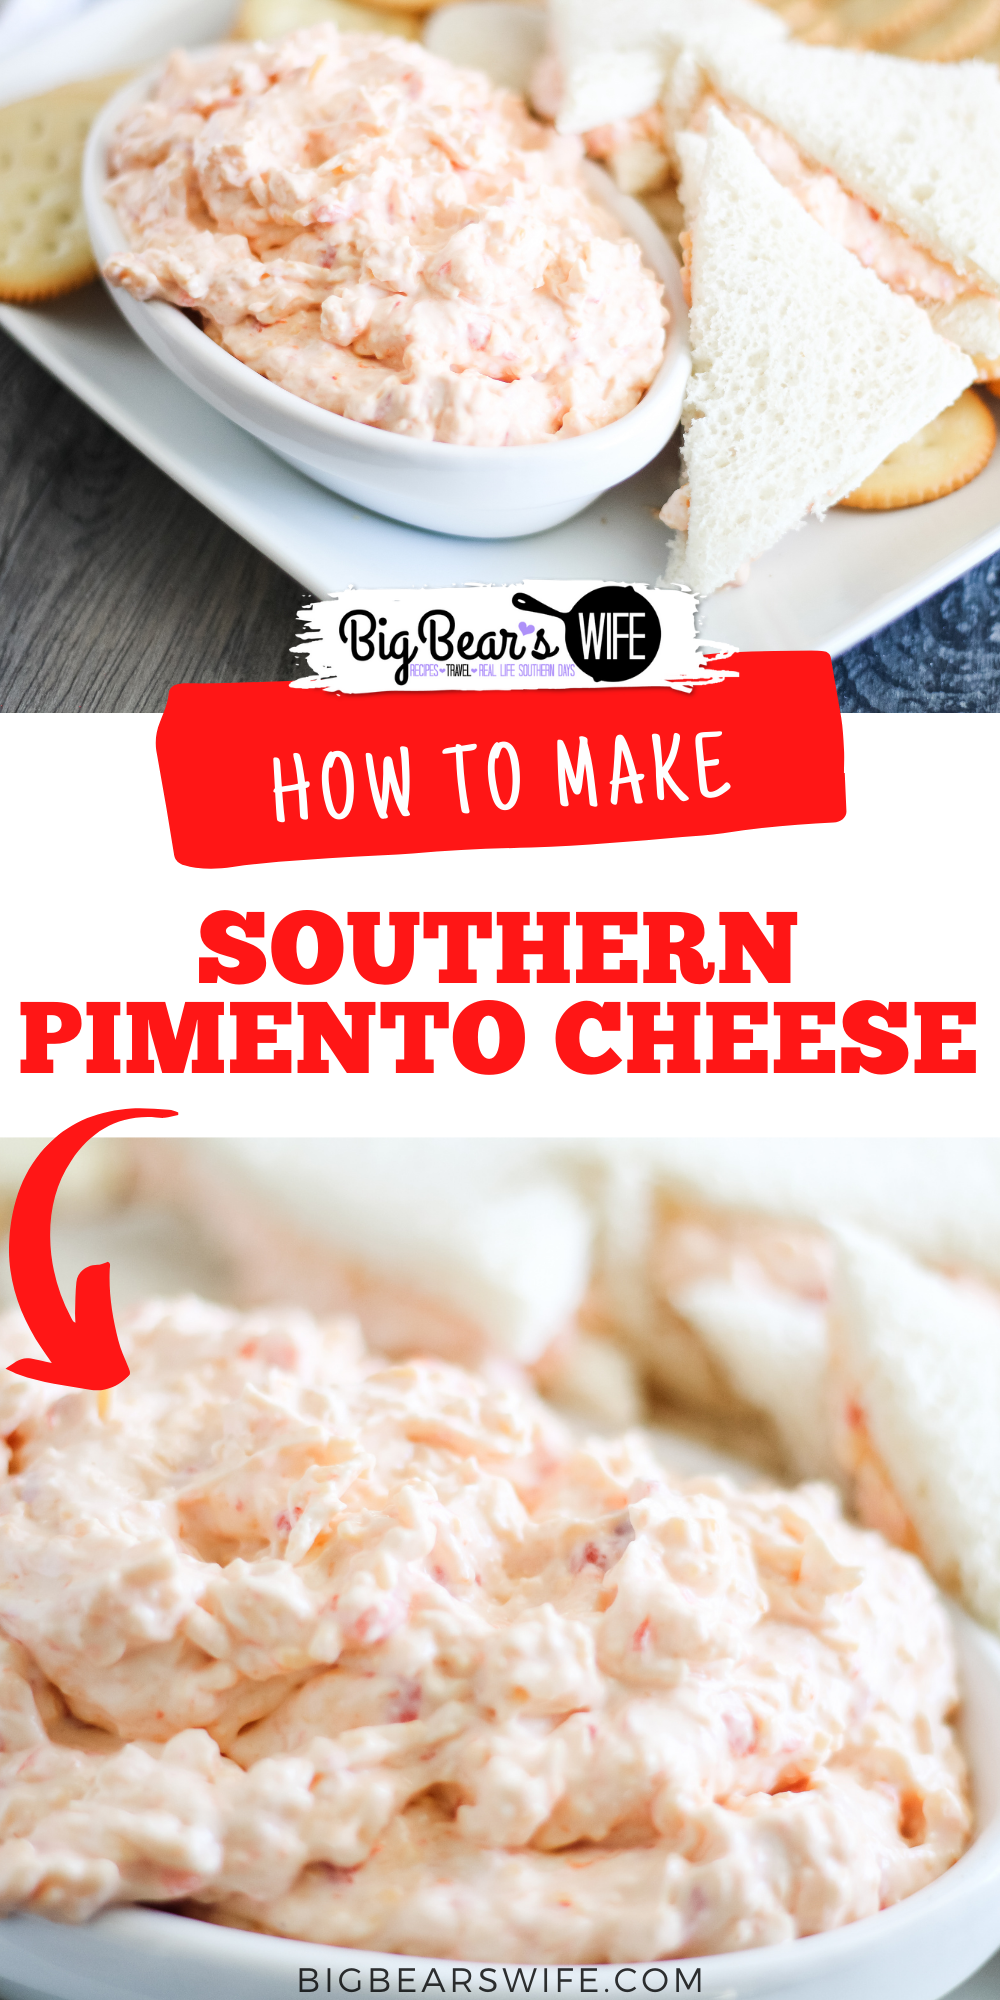 Homemade Southern Pimento Cheese is super easy to make at home! This recipe is a combination of a recipe from my grandmother's recipe box and my own twist. It's our favorite pimento cheese recipe!